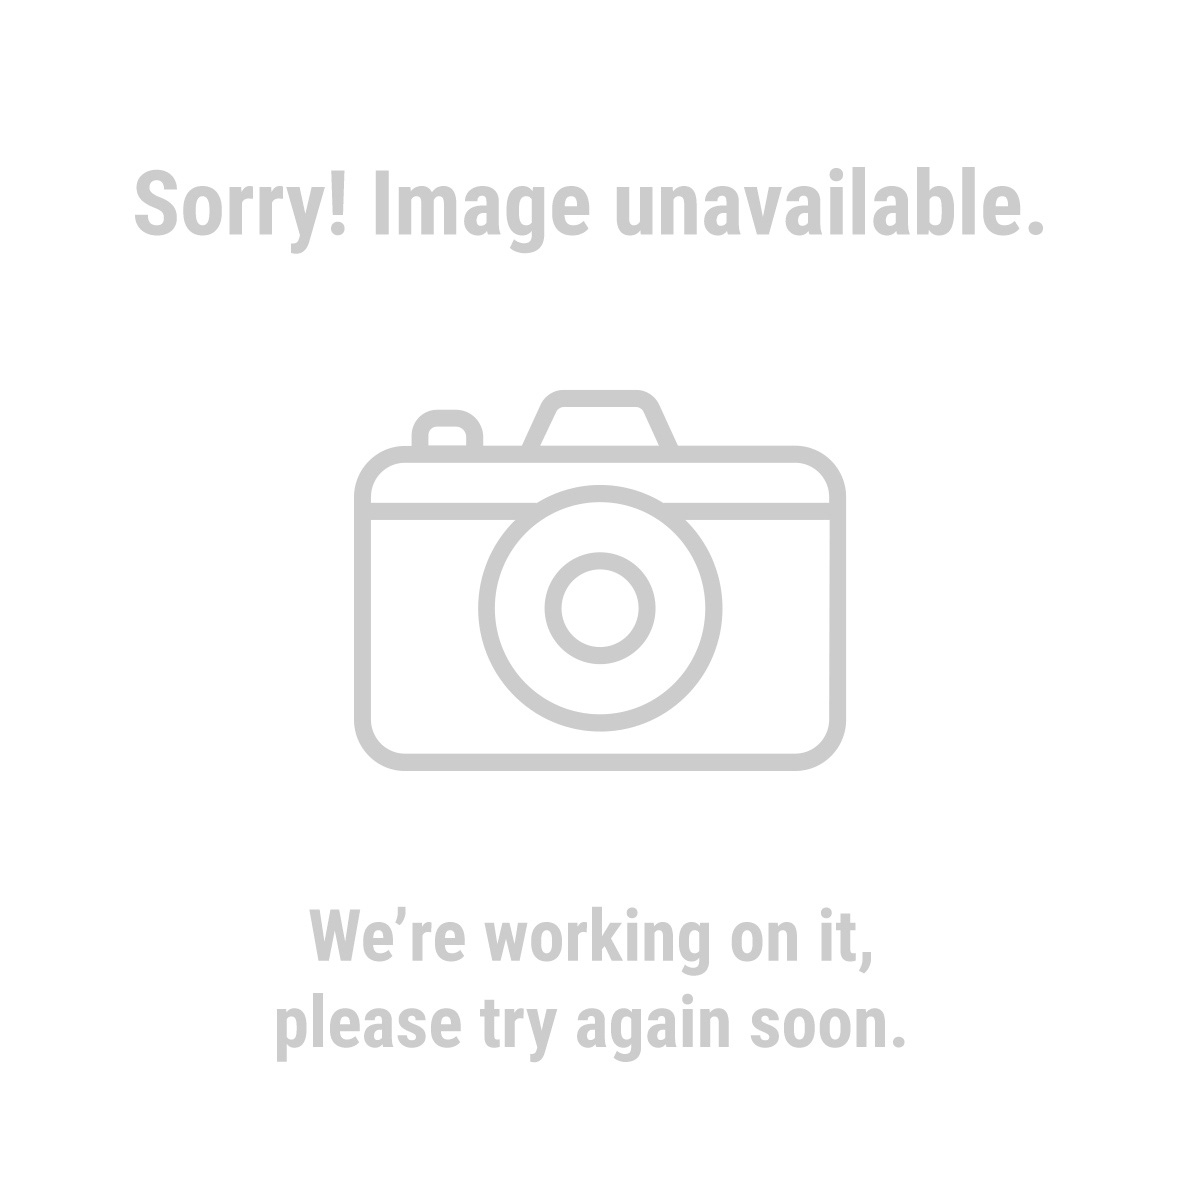 Chicago Electric Power Tools 69067 7.5 Amp Reciprocating Saw